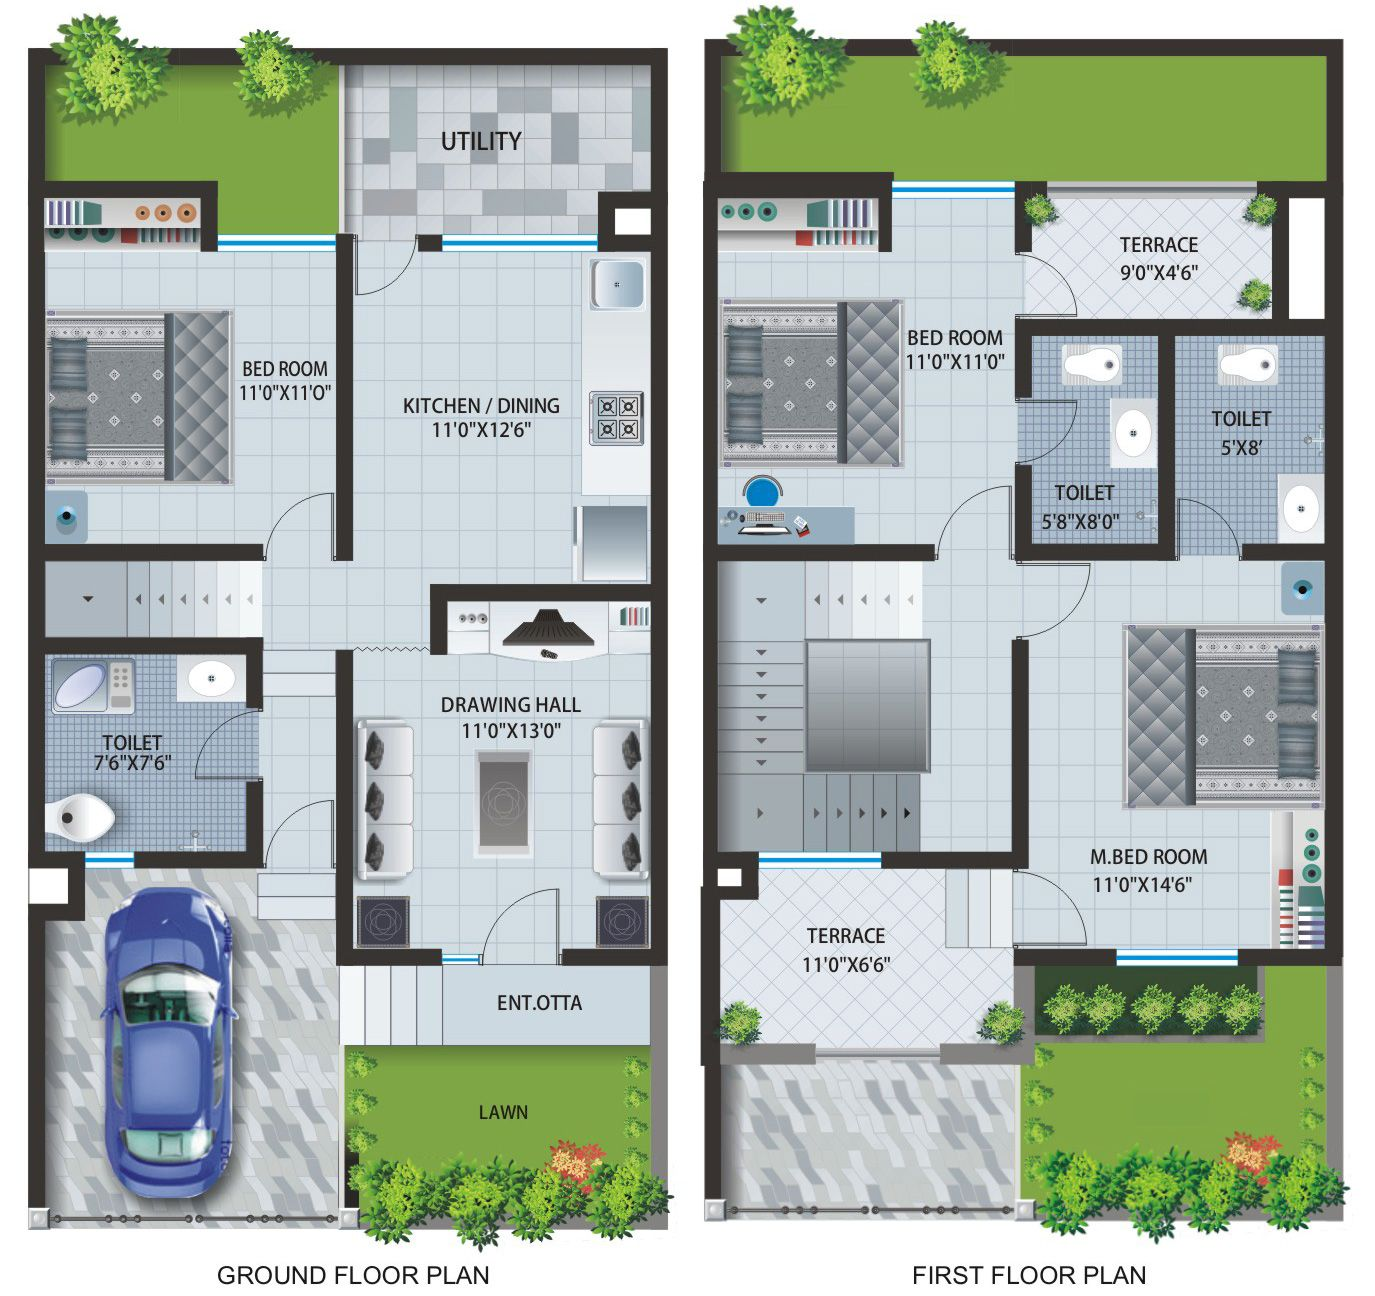 Floor plans of apartments row houses at caroline baner for Apartment design layout